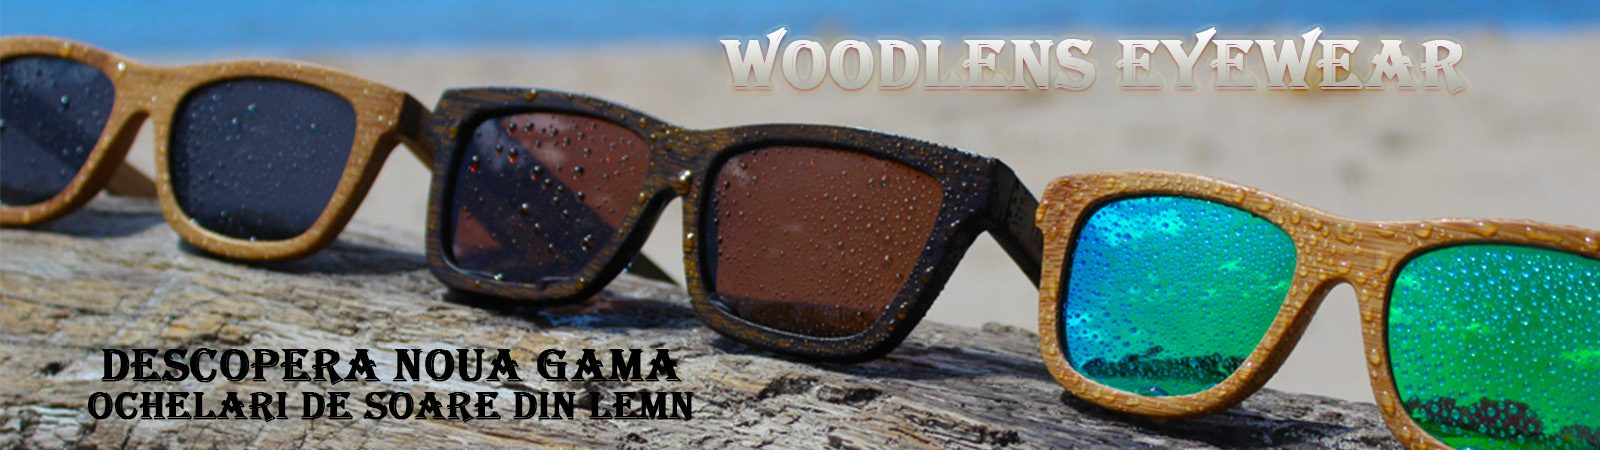 Woodlens eyewear